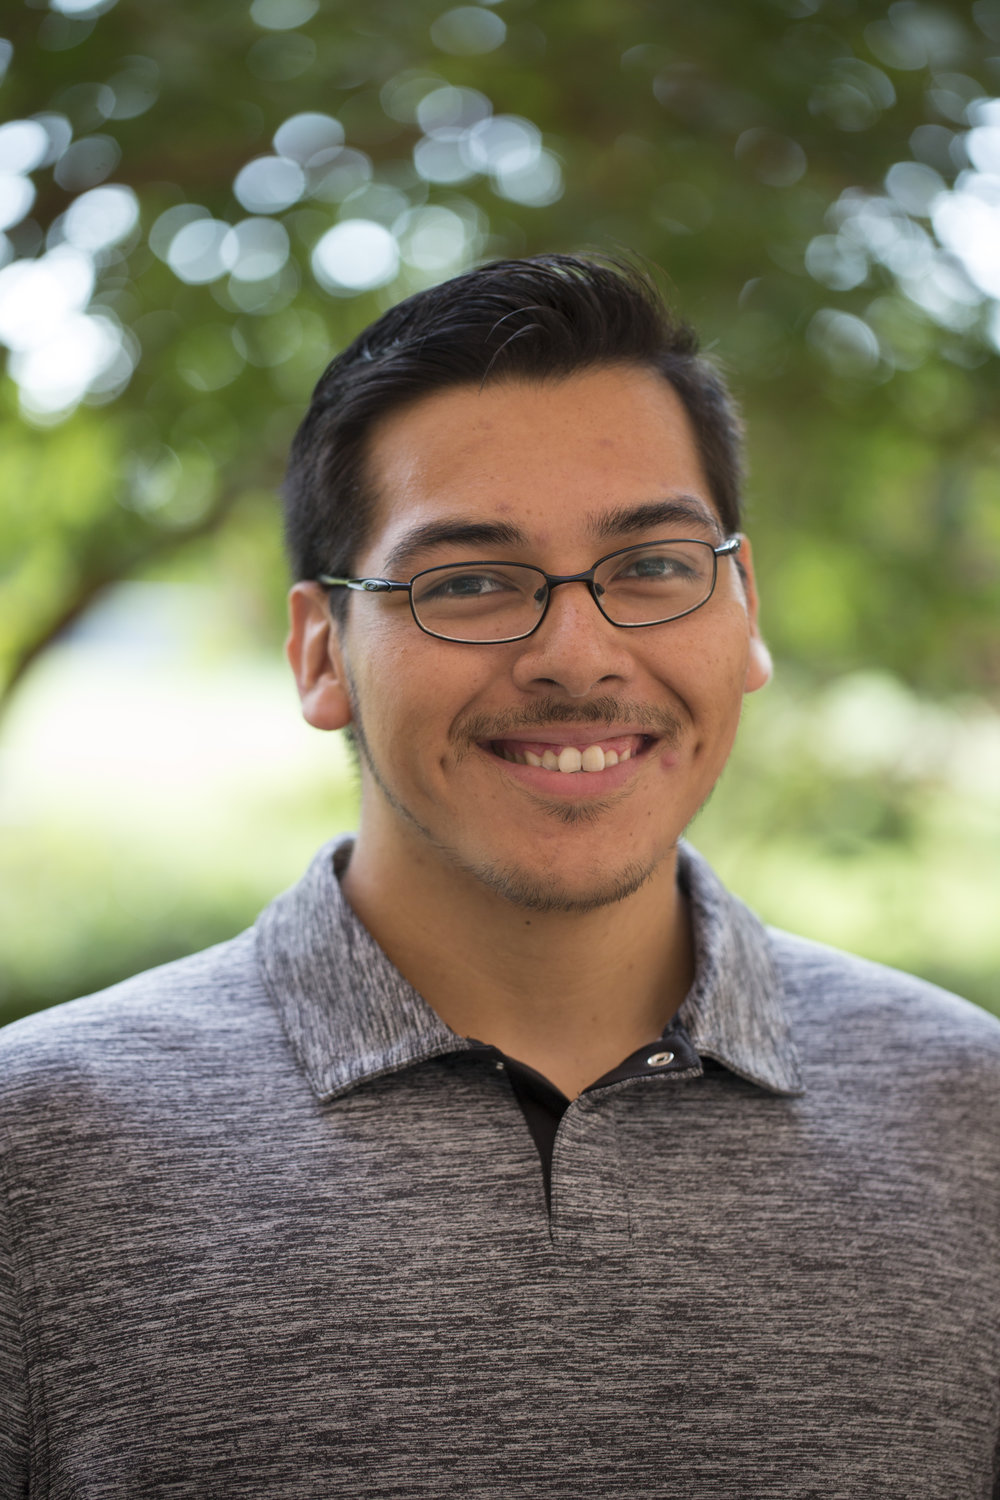 Henry Lujan Jr., B.S.   Third-Year Ph.D. Candidate  Expected Graduation Date: May 2020  Henry_Lujan@baylor.edu    LinkedIn